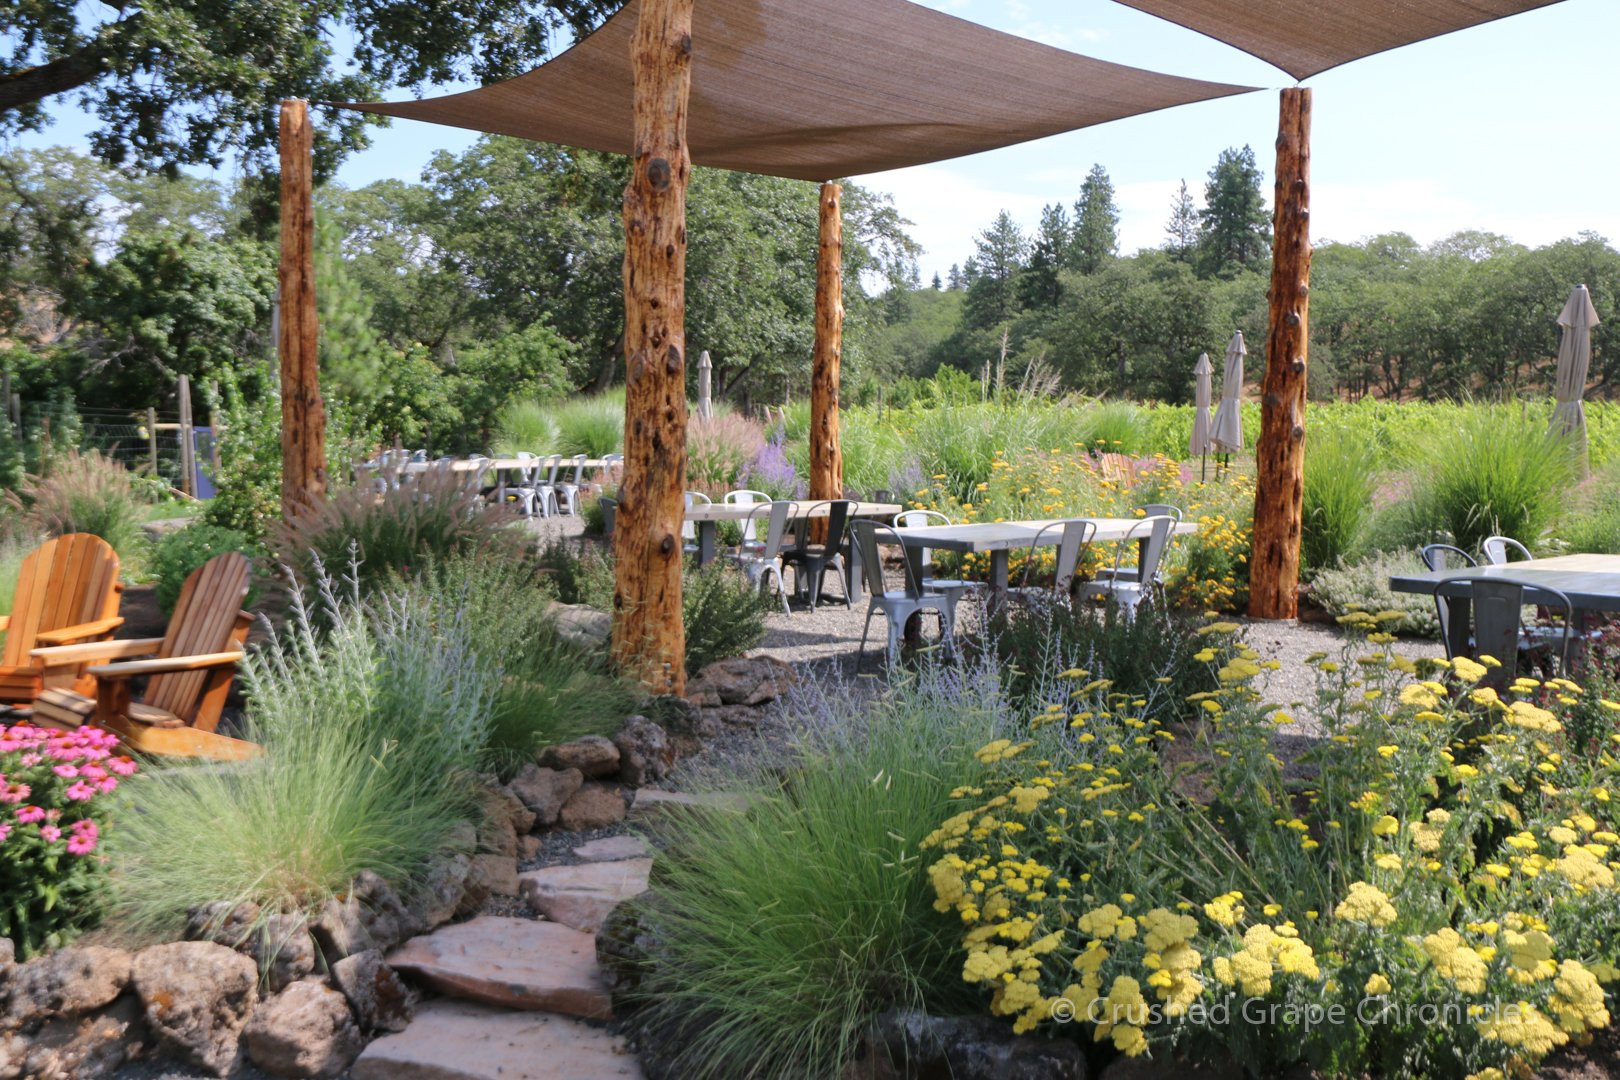 Syncline Wine's tasting garden in the Columbia Gorge AVA